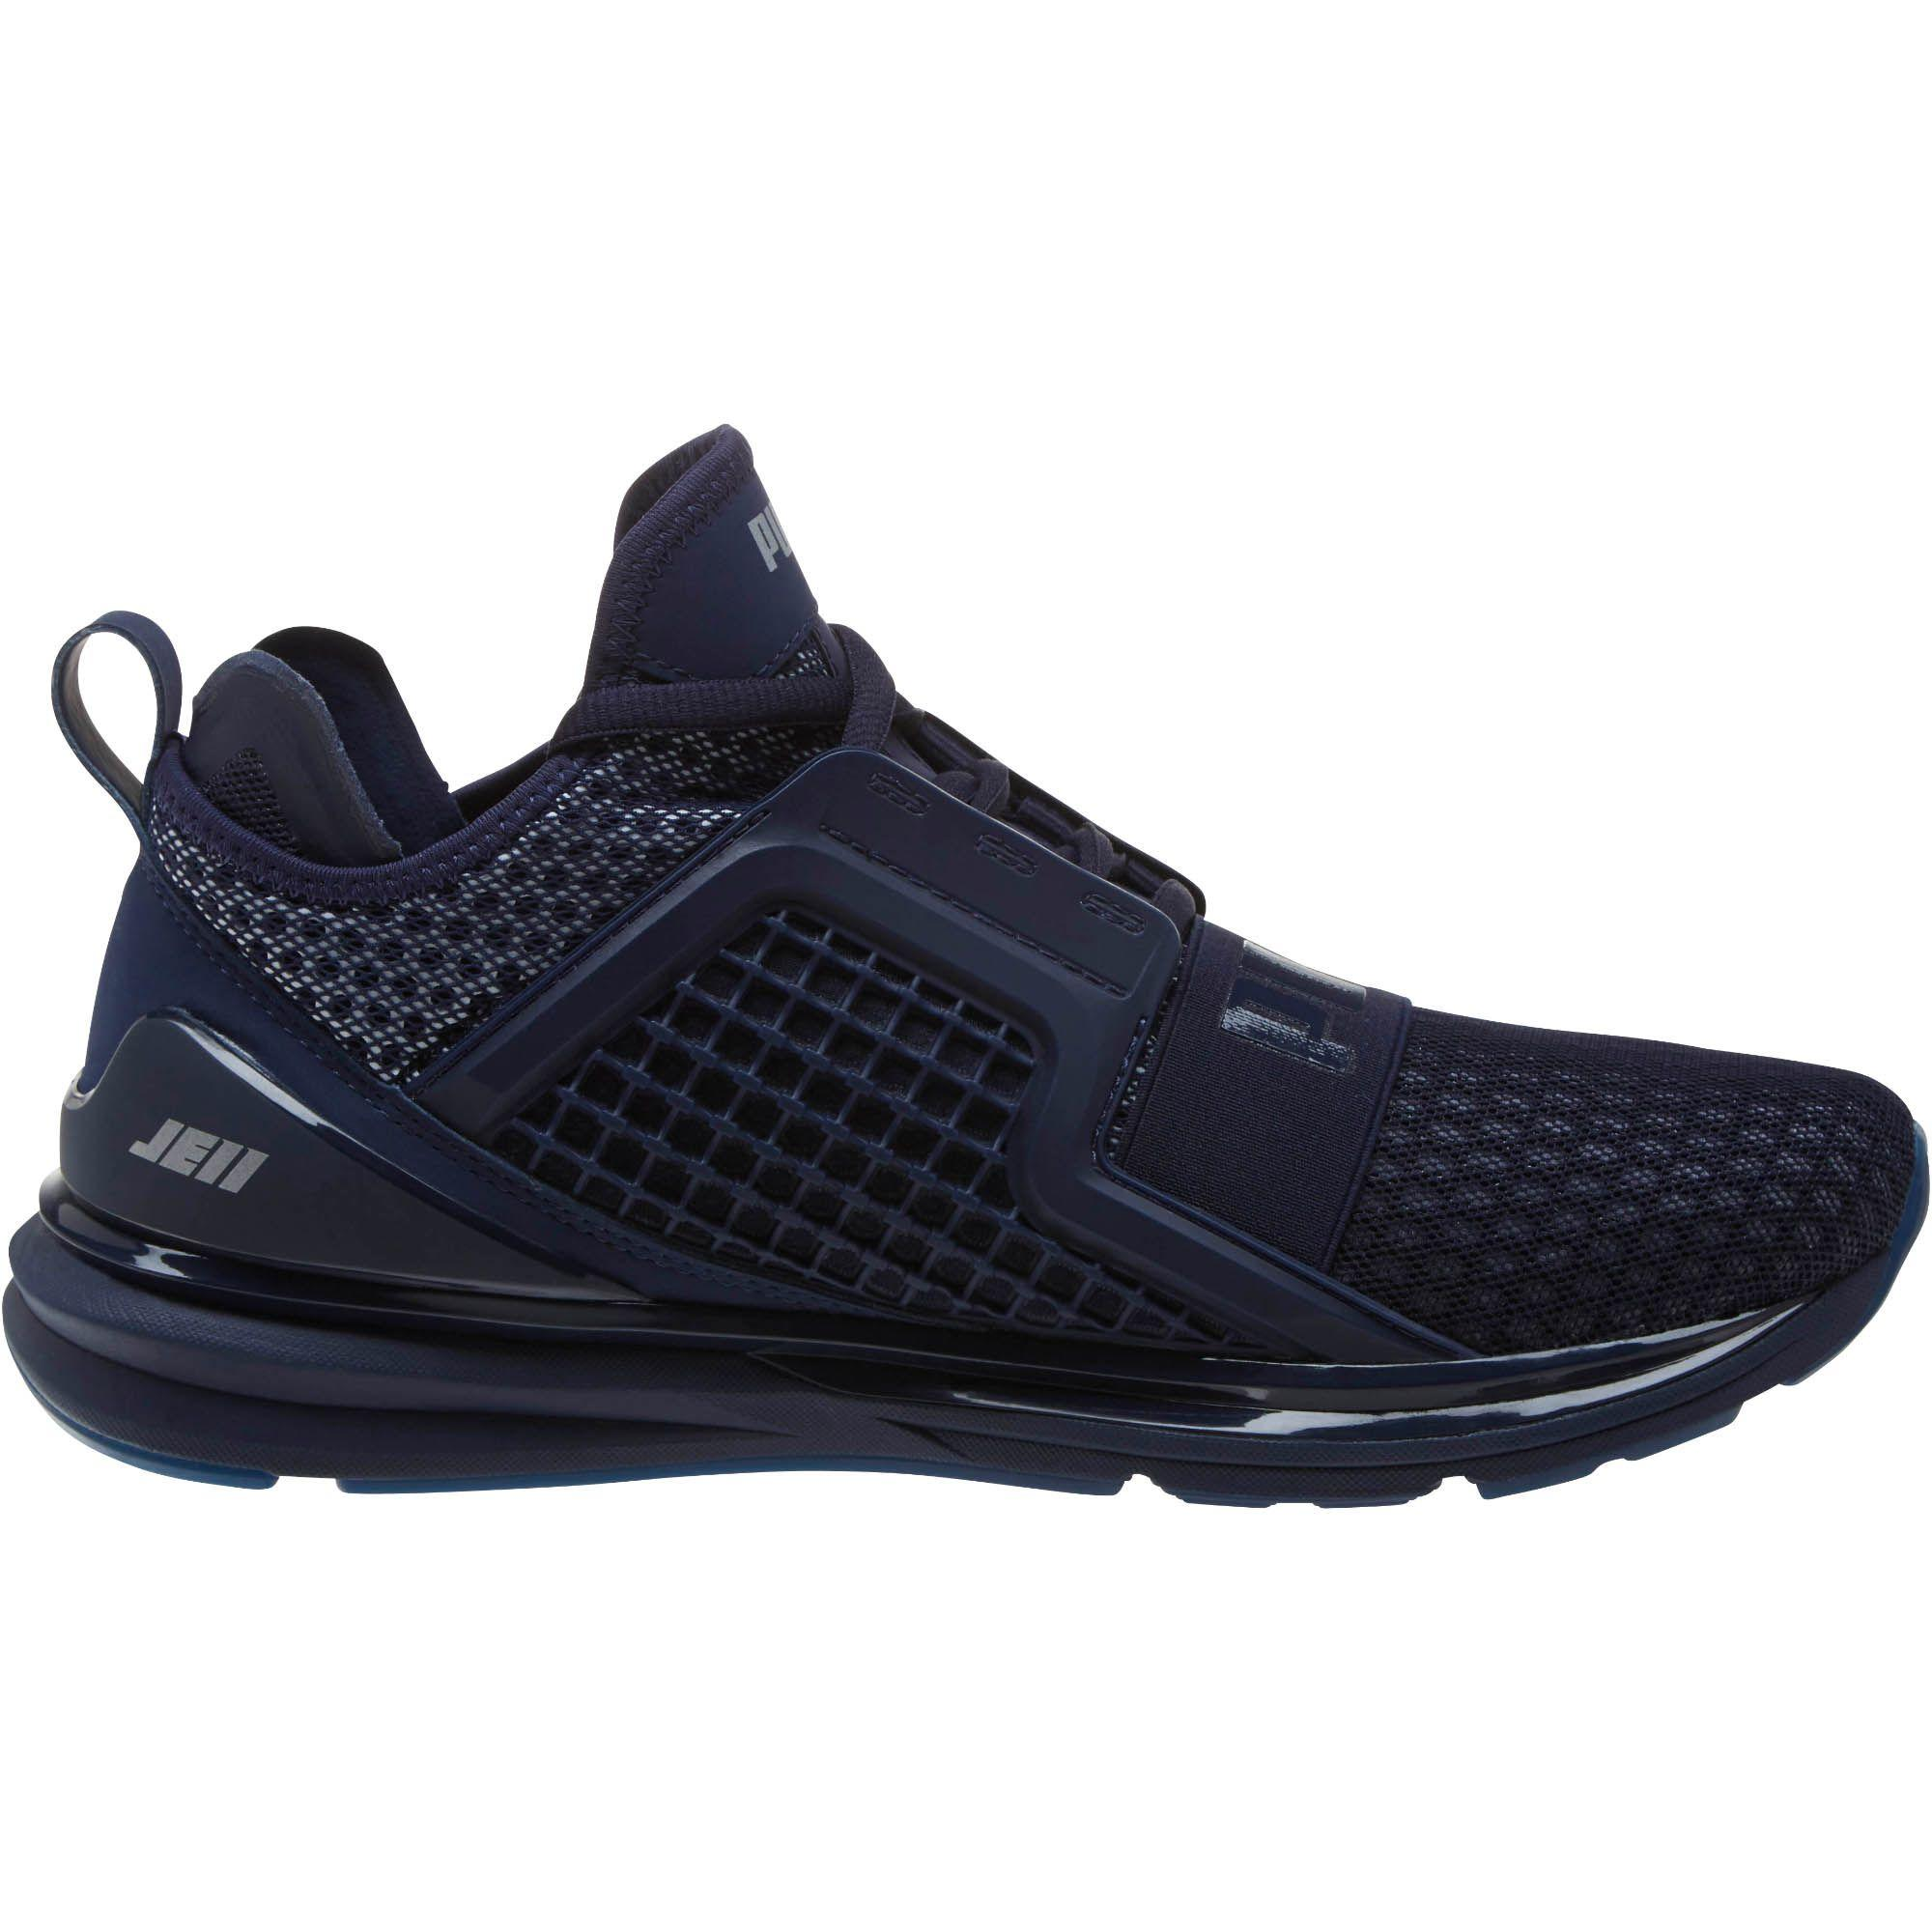 1603bf84aa1c35 Lyst - PUMA Ignite Limitless Je11 Men s Training Shoes in Blue for Men